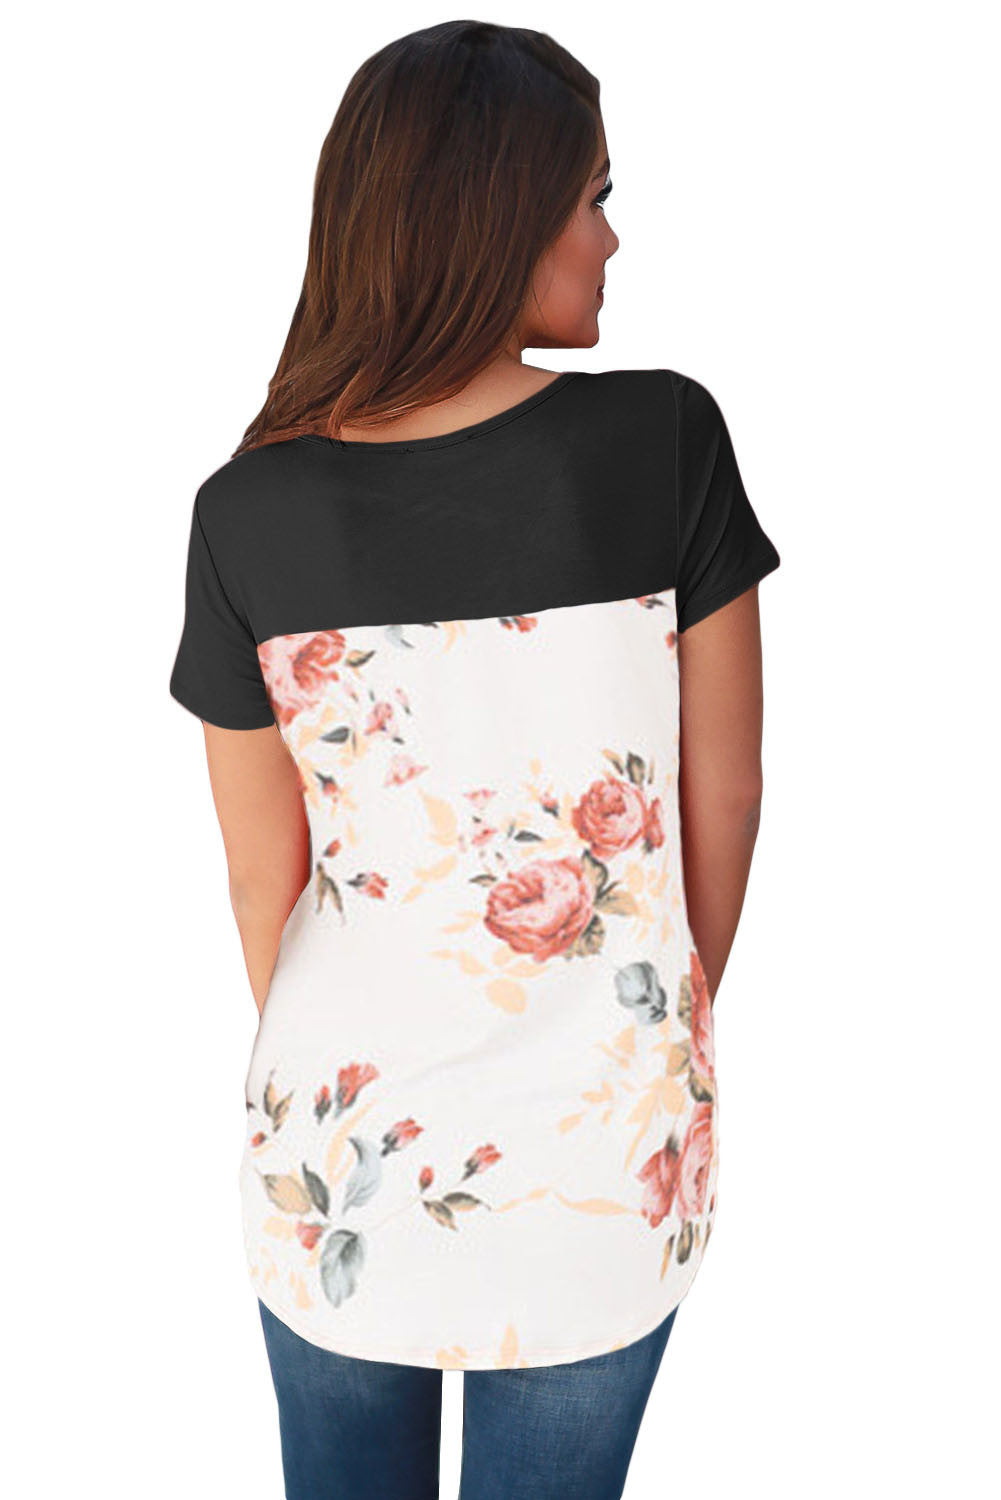 Black floral print lower back t shirt inxcy for Black floral print shirt